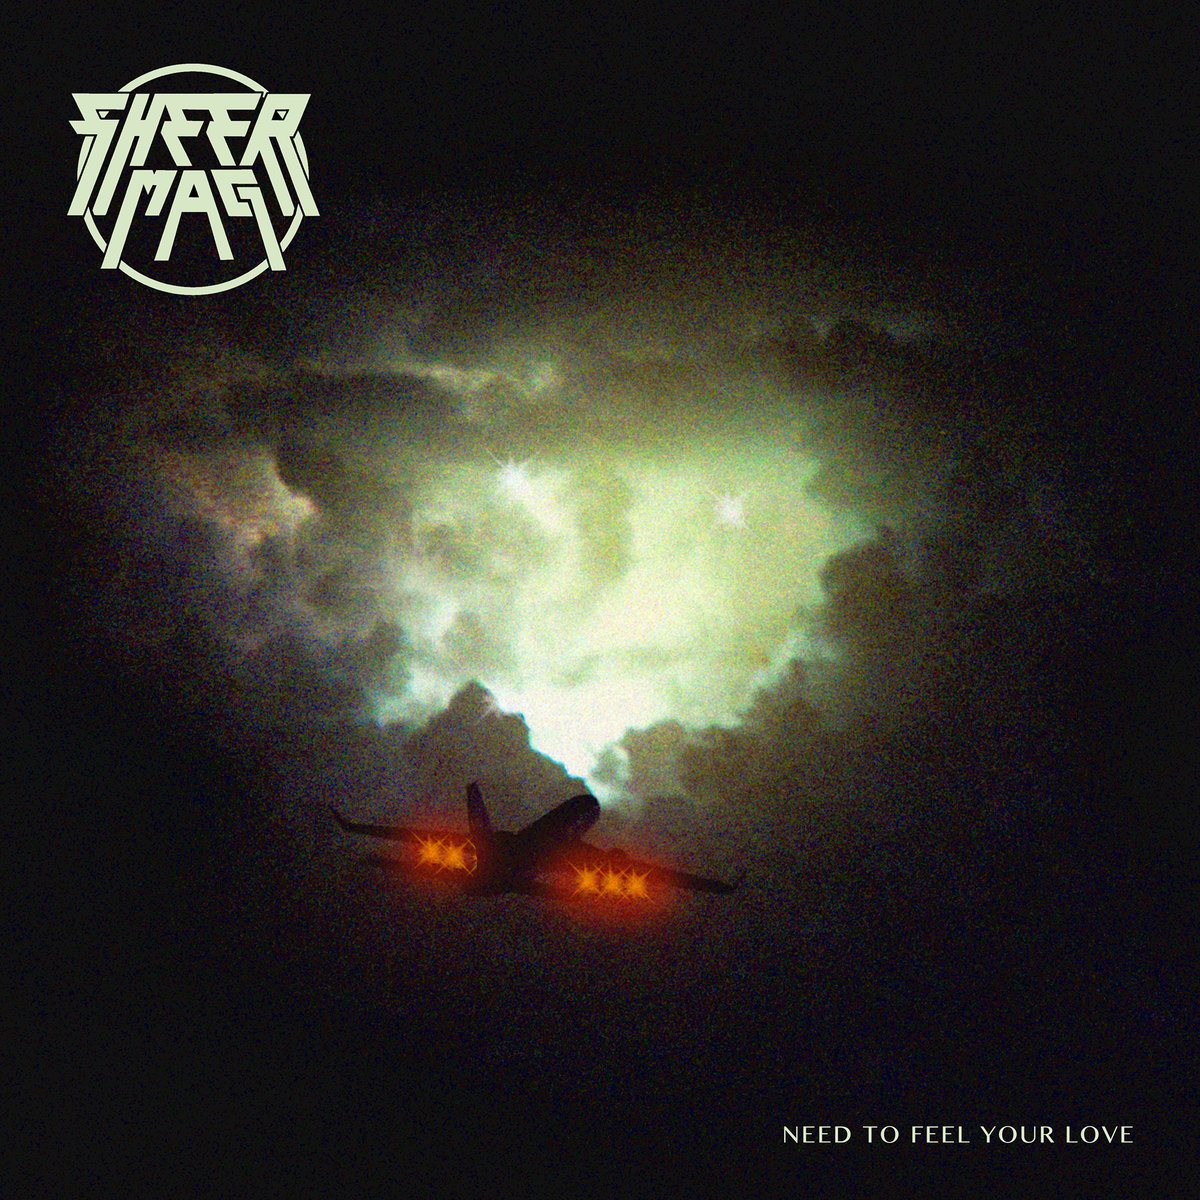 Sheer Mag - Need To Feel Your Love.